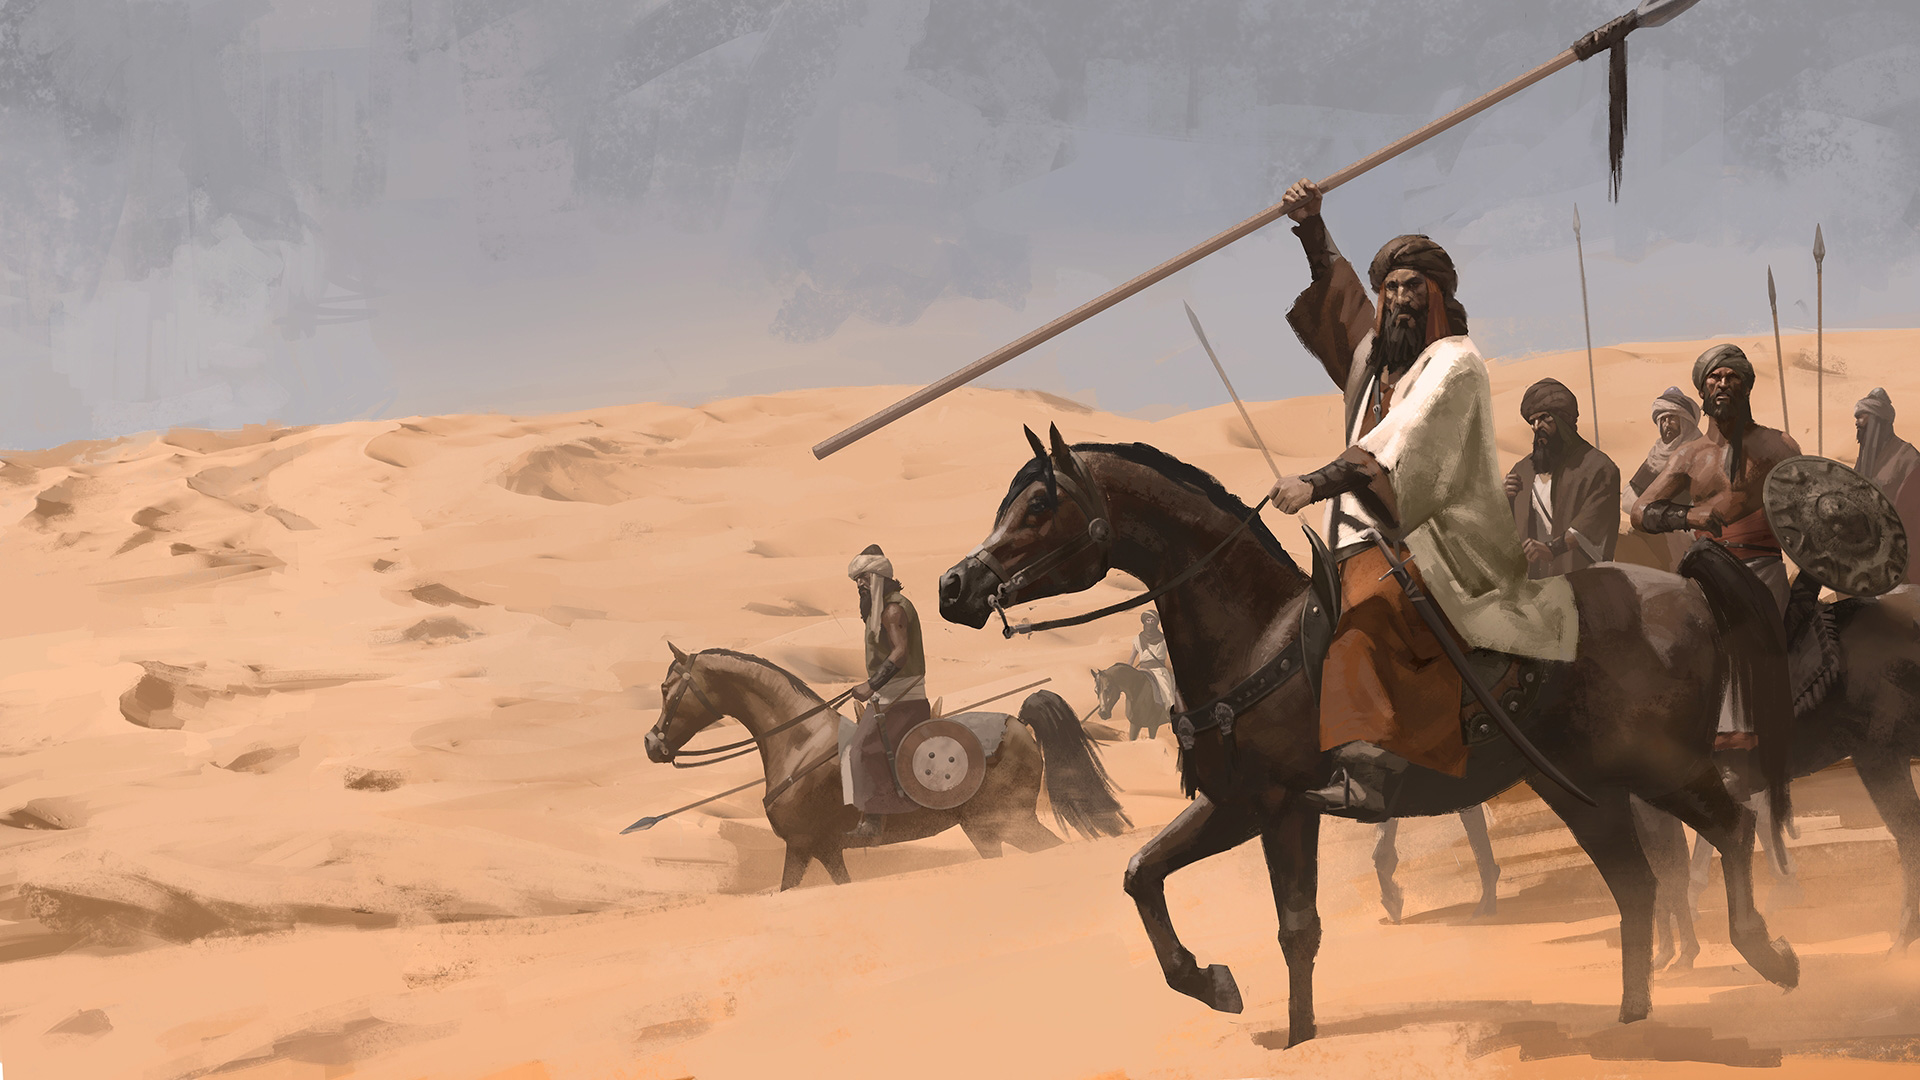 Pre-review: Mount & Blade II: Bannerlord